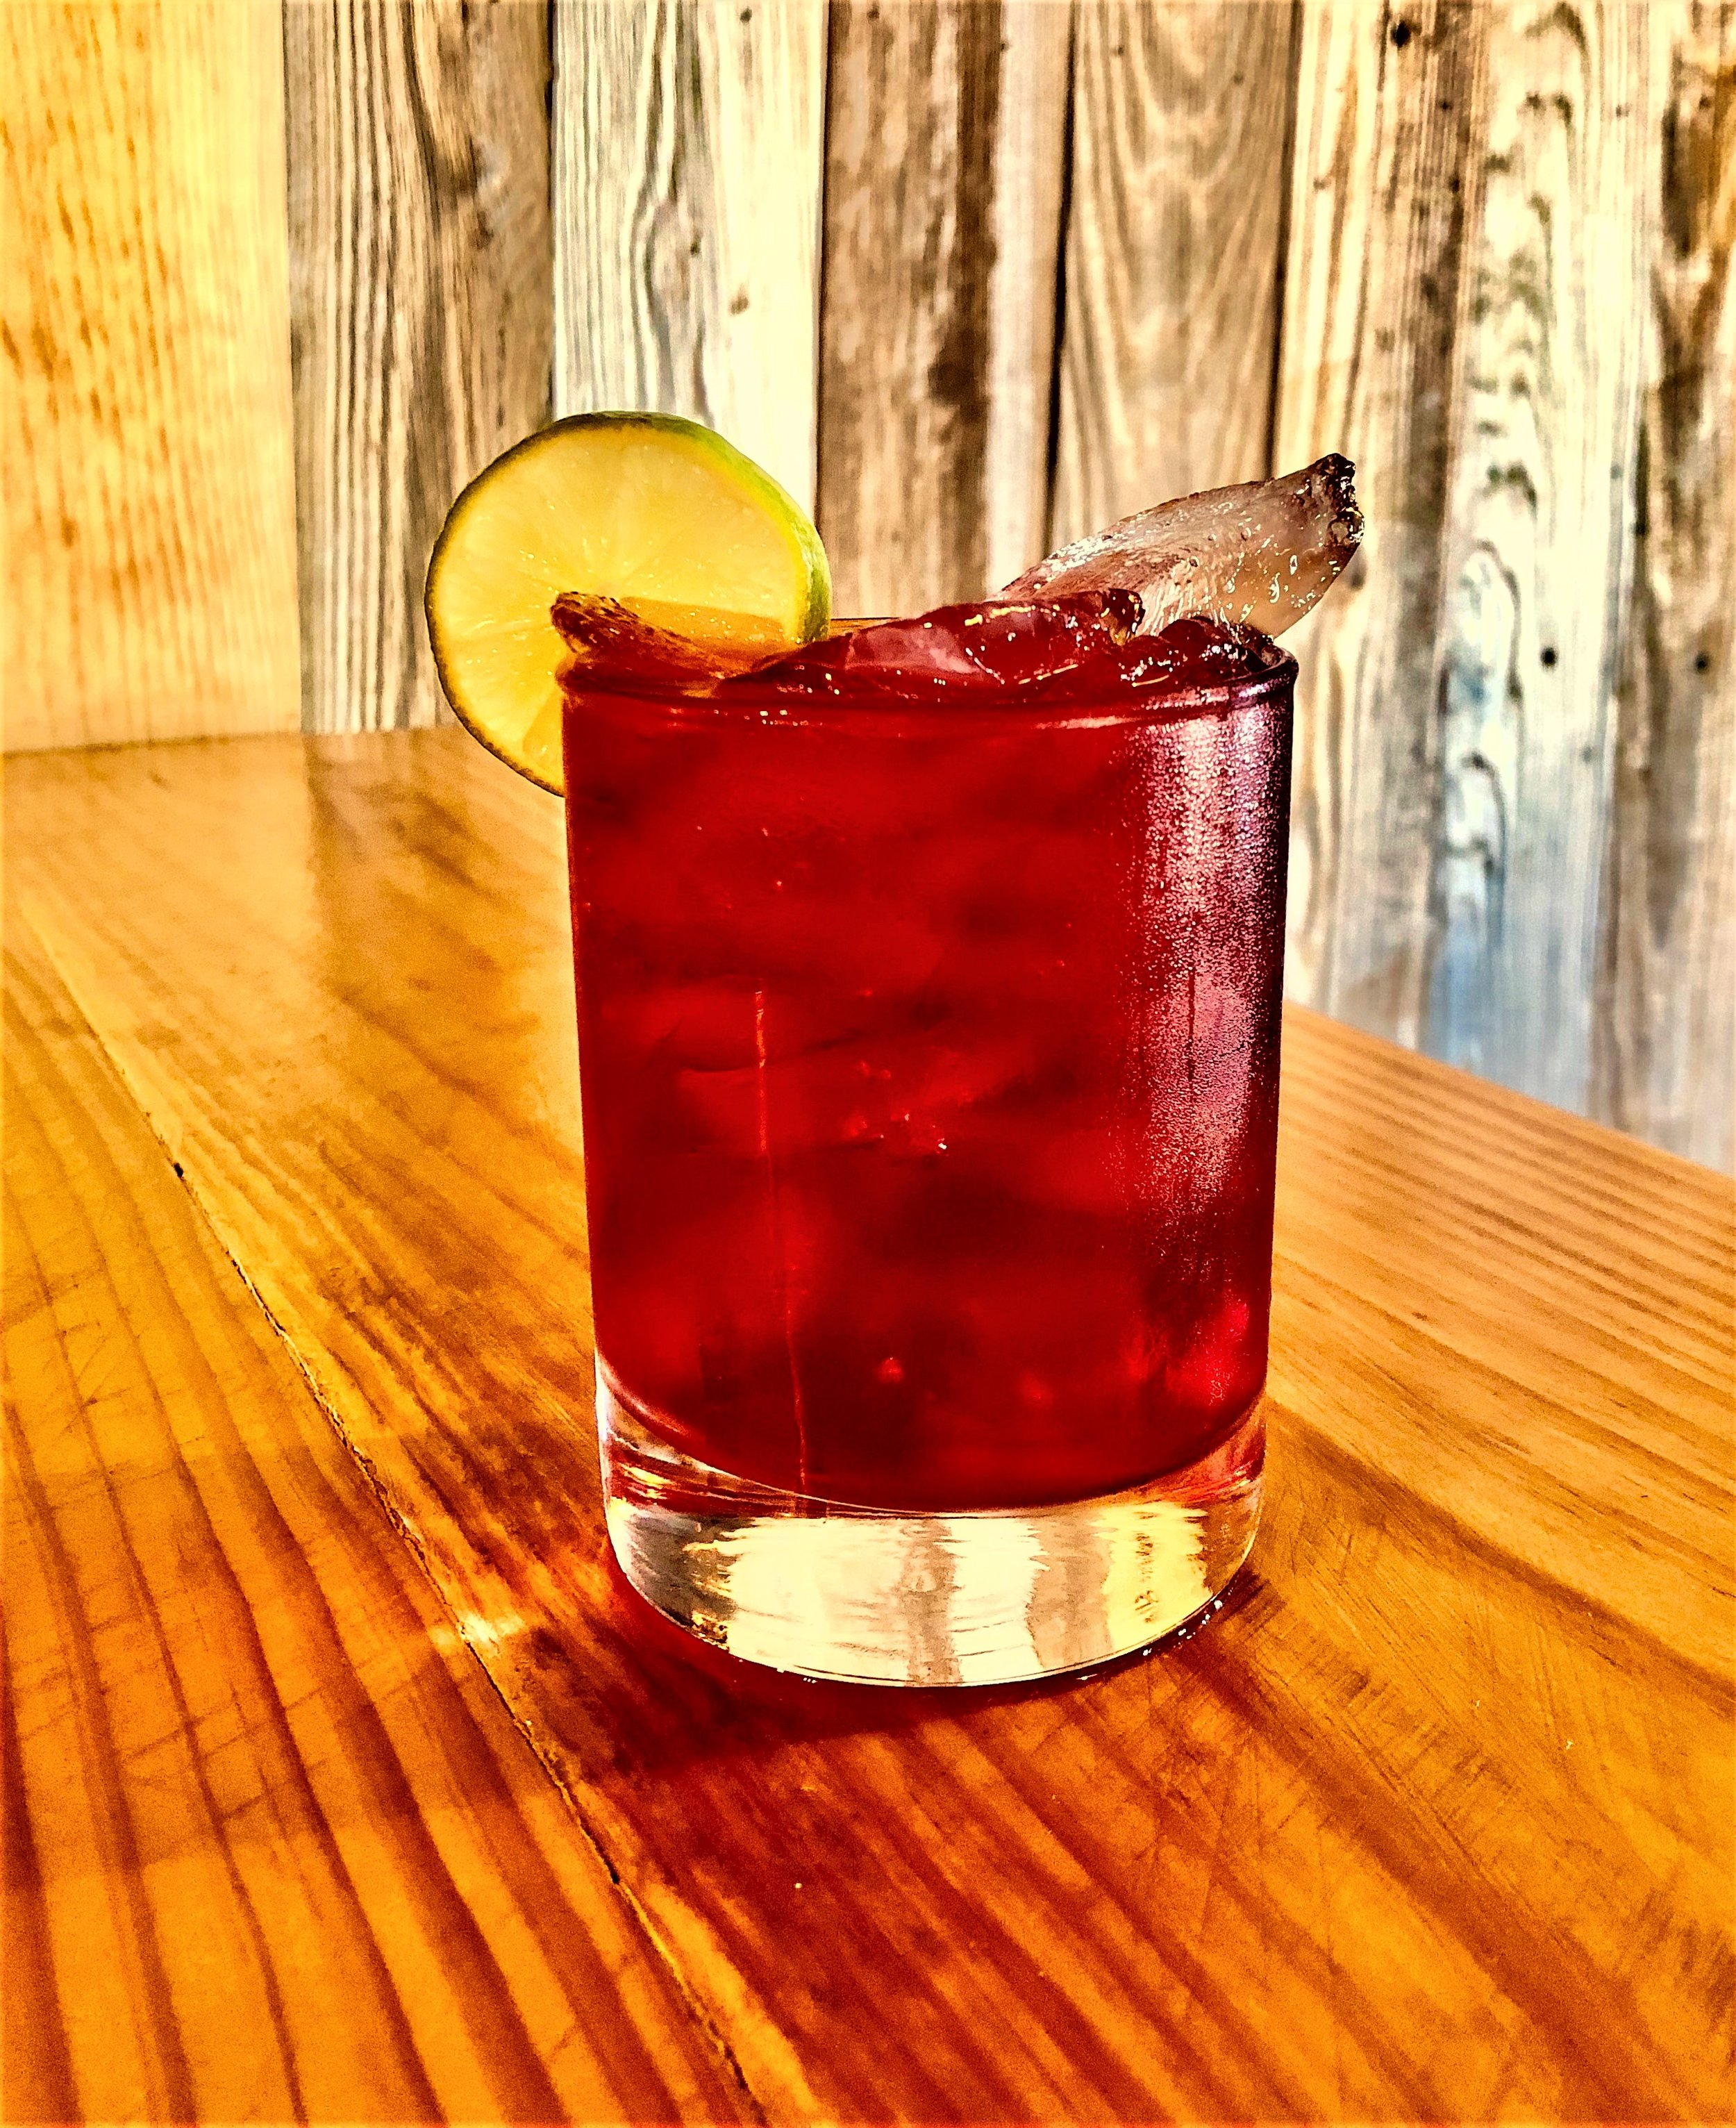 WRV CAPE COD   2 ounces of WILD RAG VODKA or WILD RAG MESQUITE BEAN VODKA 3 ounces Cranberry Juice 1/4 ounces of lime  Pour ingredients in a glass filled with ice. Garnish with key lime slice.